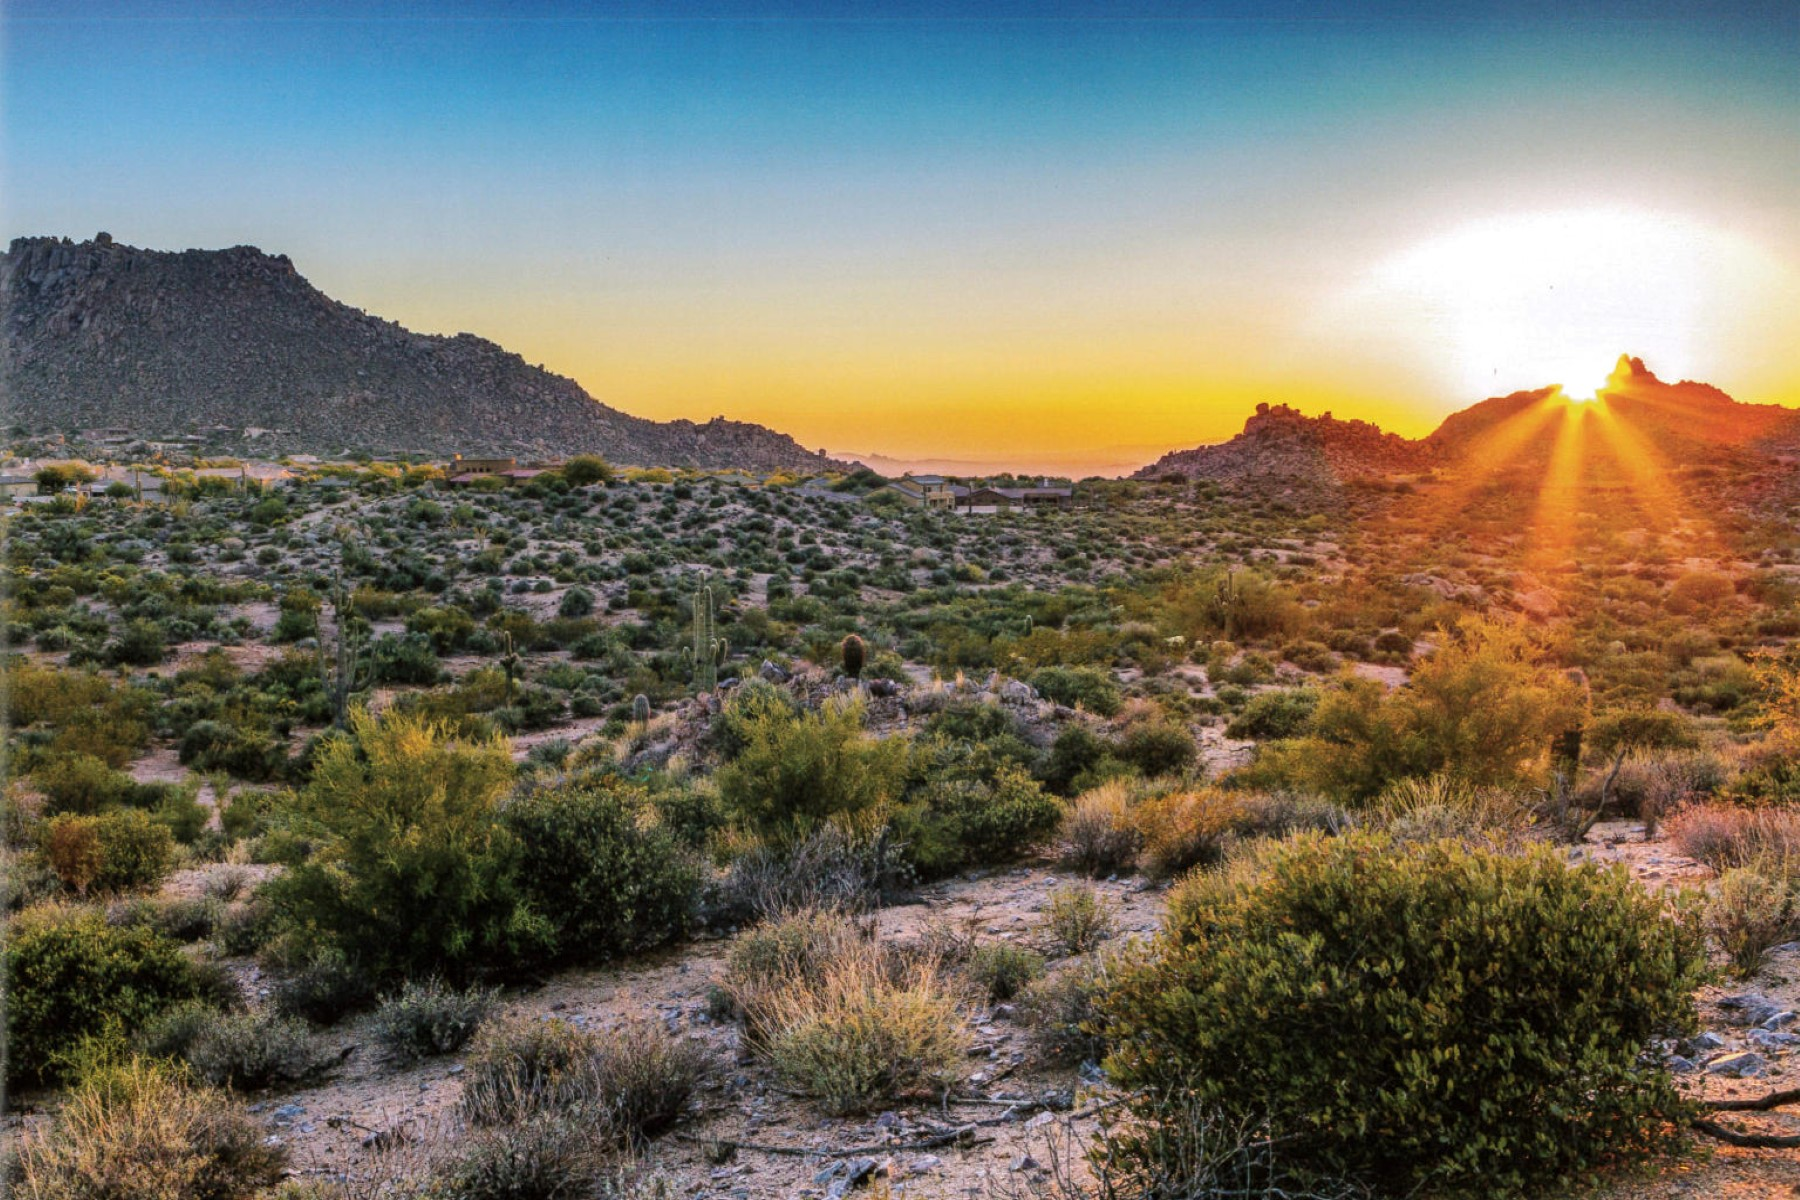 Property For Sale at Extreme Privacy & Gorgeous Views on 10 Acres in North Scottsdale